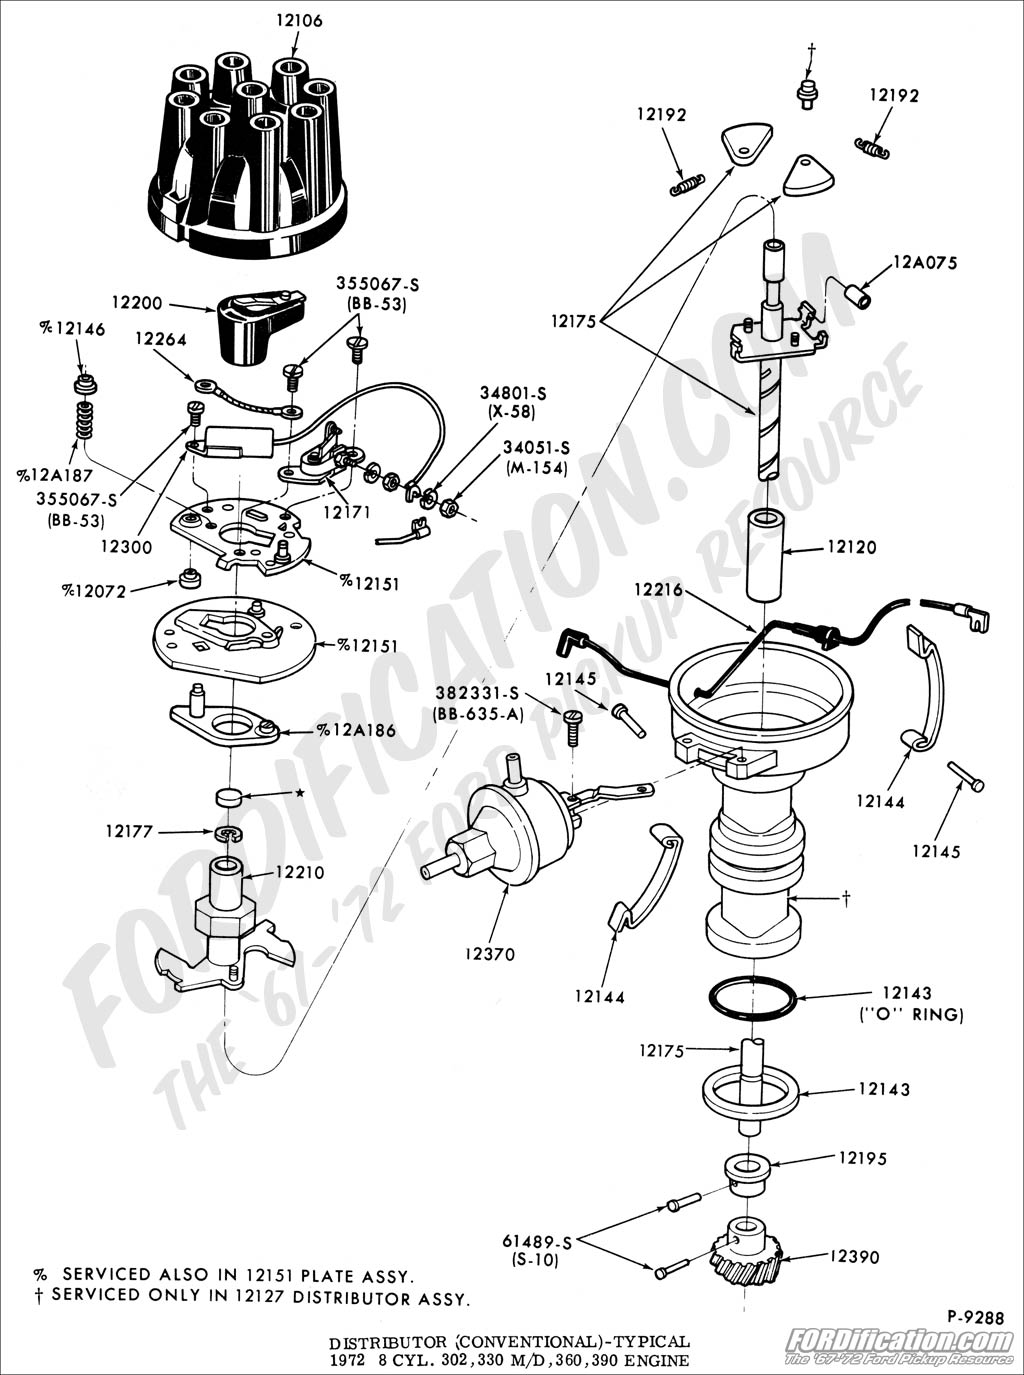 basic 12 volt wiring diagrams  basic  free engine image for user manual download